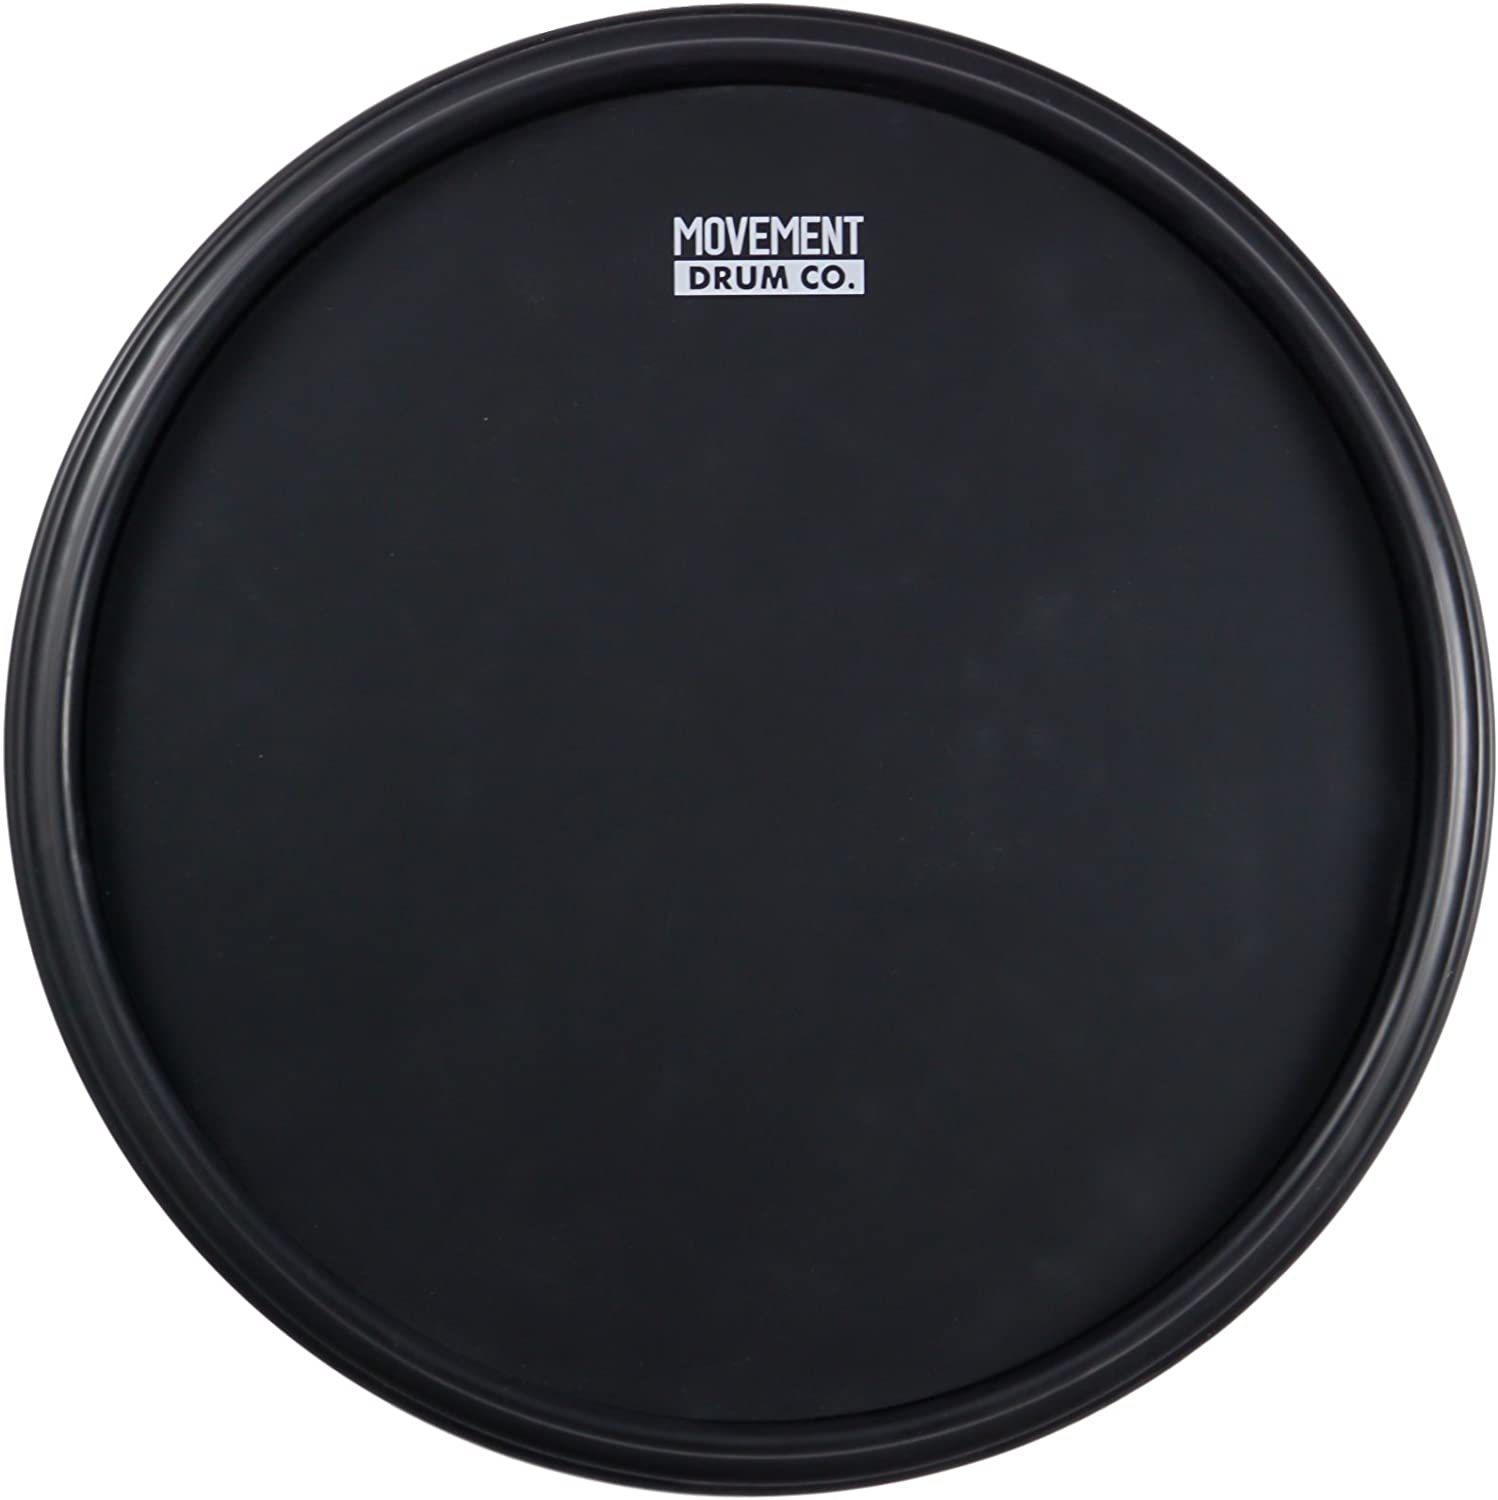 The 12-inch Double Sided Practice Pad by Movement Drum Co.